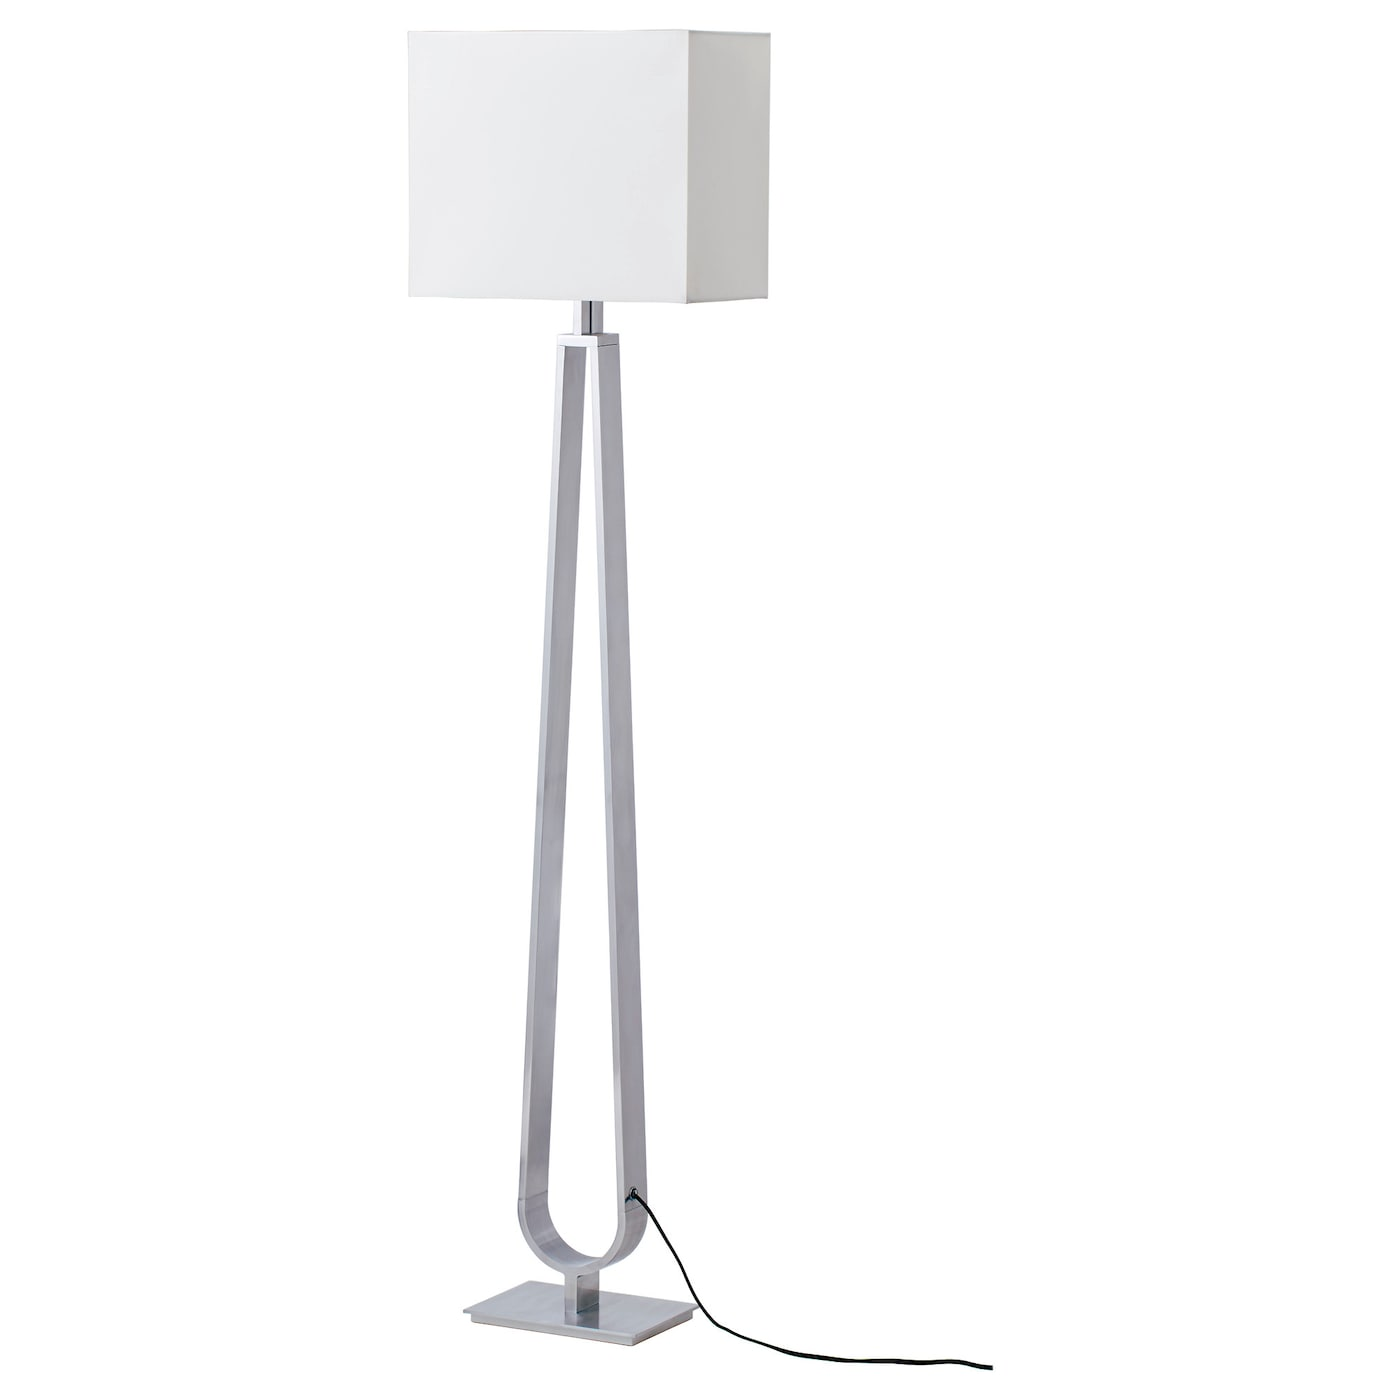 Floor lamps standard lamps ikea ikea klabb floor lamp helps lower your electric bill because dimming the lights saves energy aloadofball Images